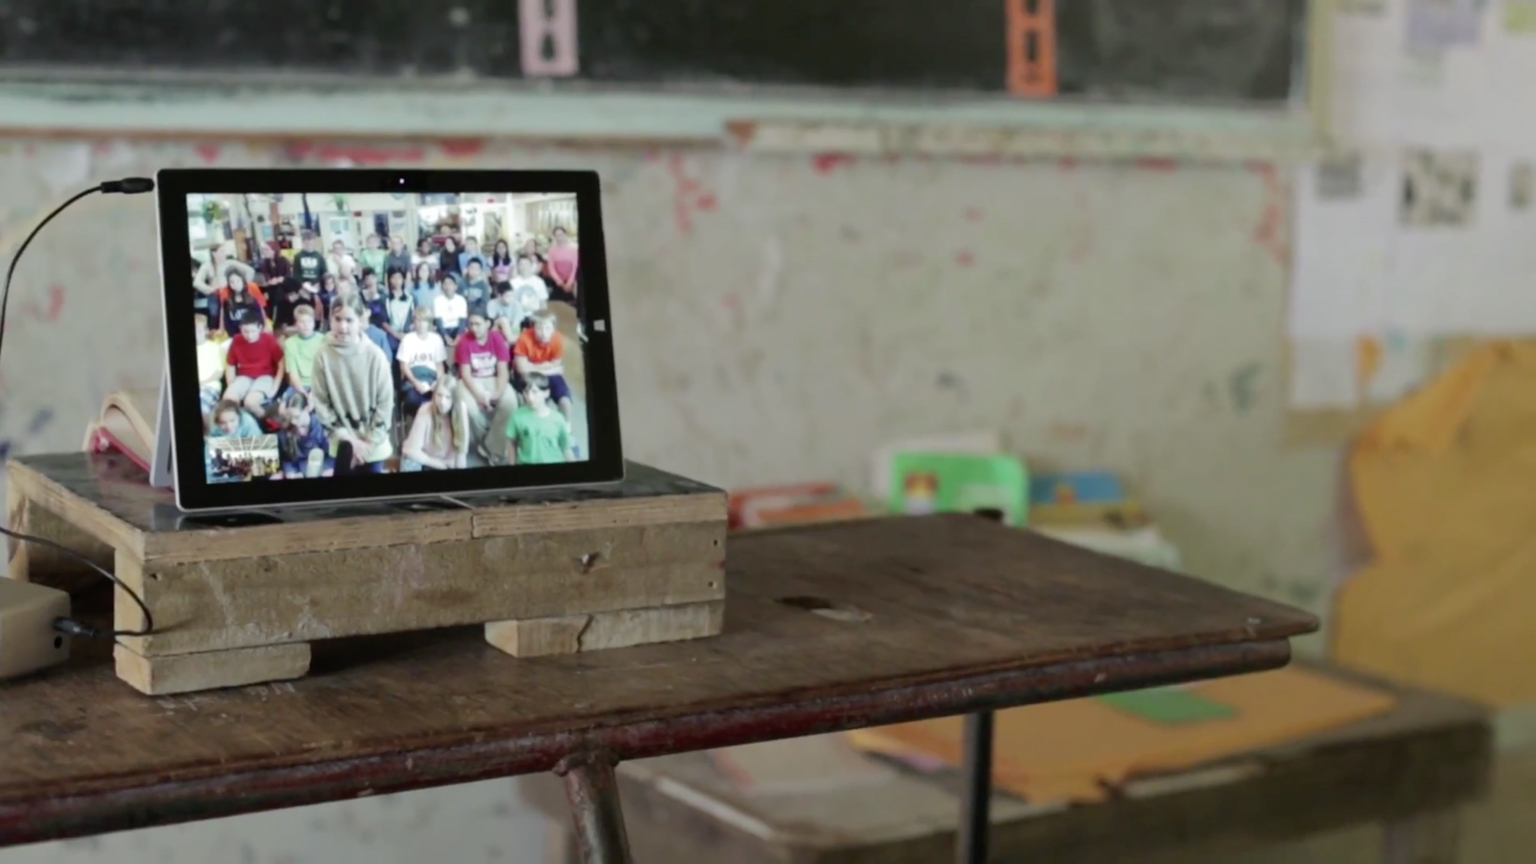 American students speak with children in the remote island of Kiribati via Skype in the Classroom to learn about climate change (watch a film of the project at bit.ly/1KTA0y1)